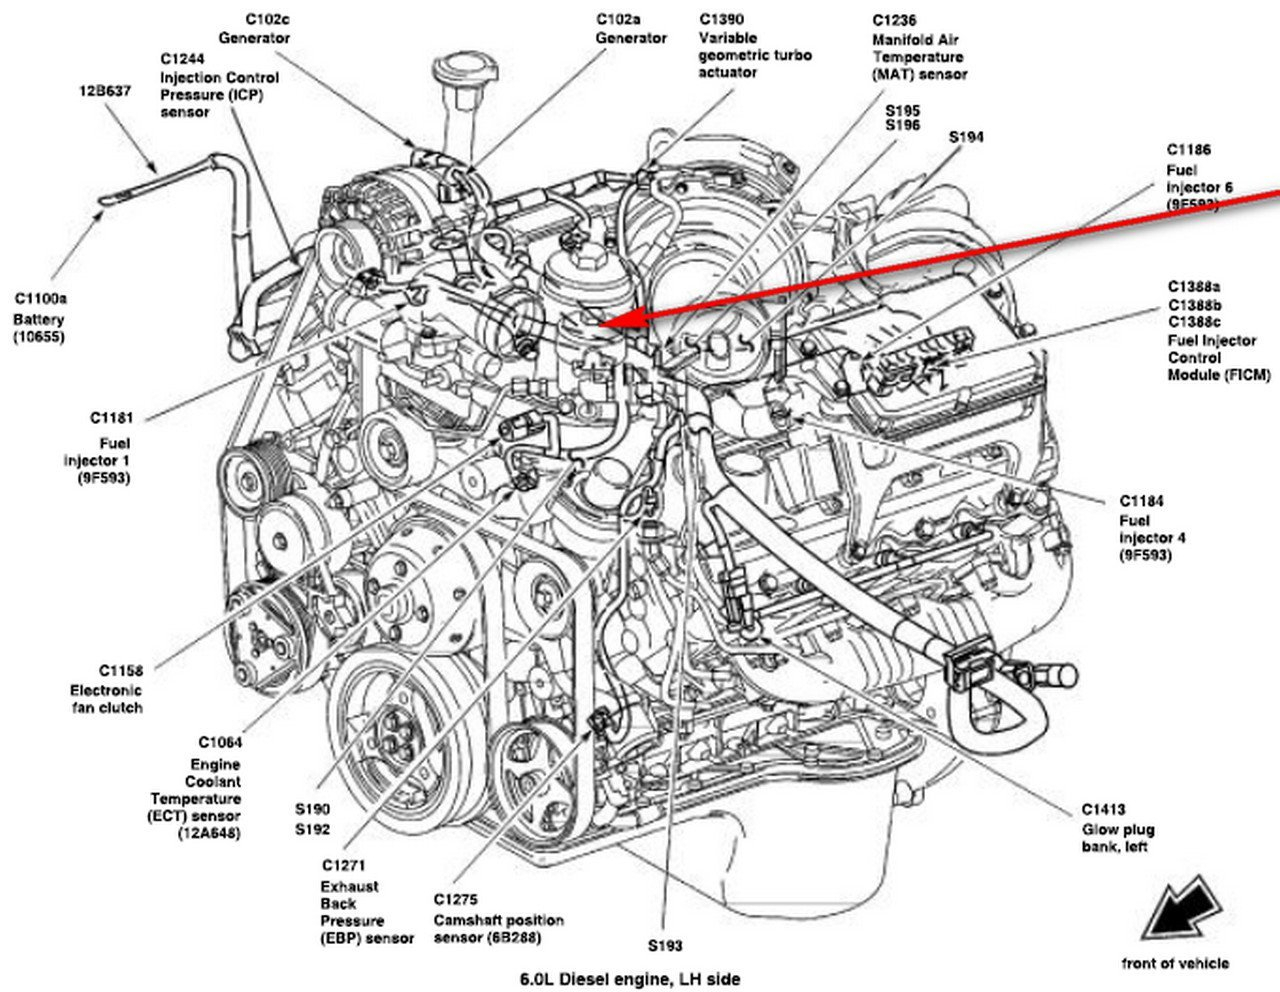 hight resolution of 6 4 diesel engine diagram wiring diagram centre 6 4 diesel engine diagram wiring diagramcar engine